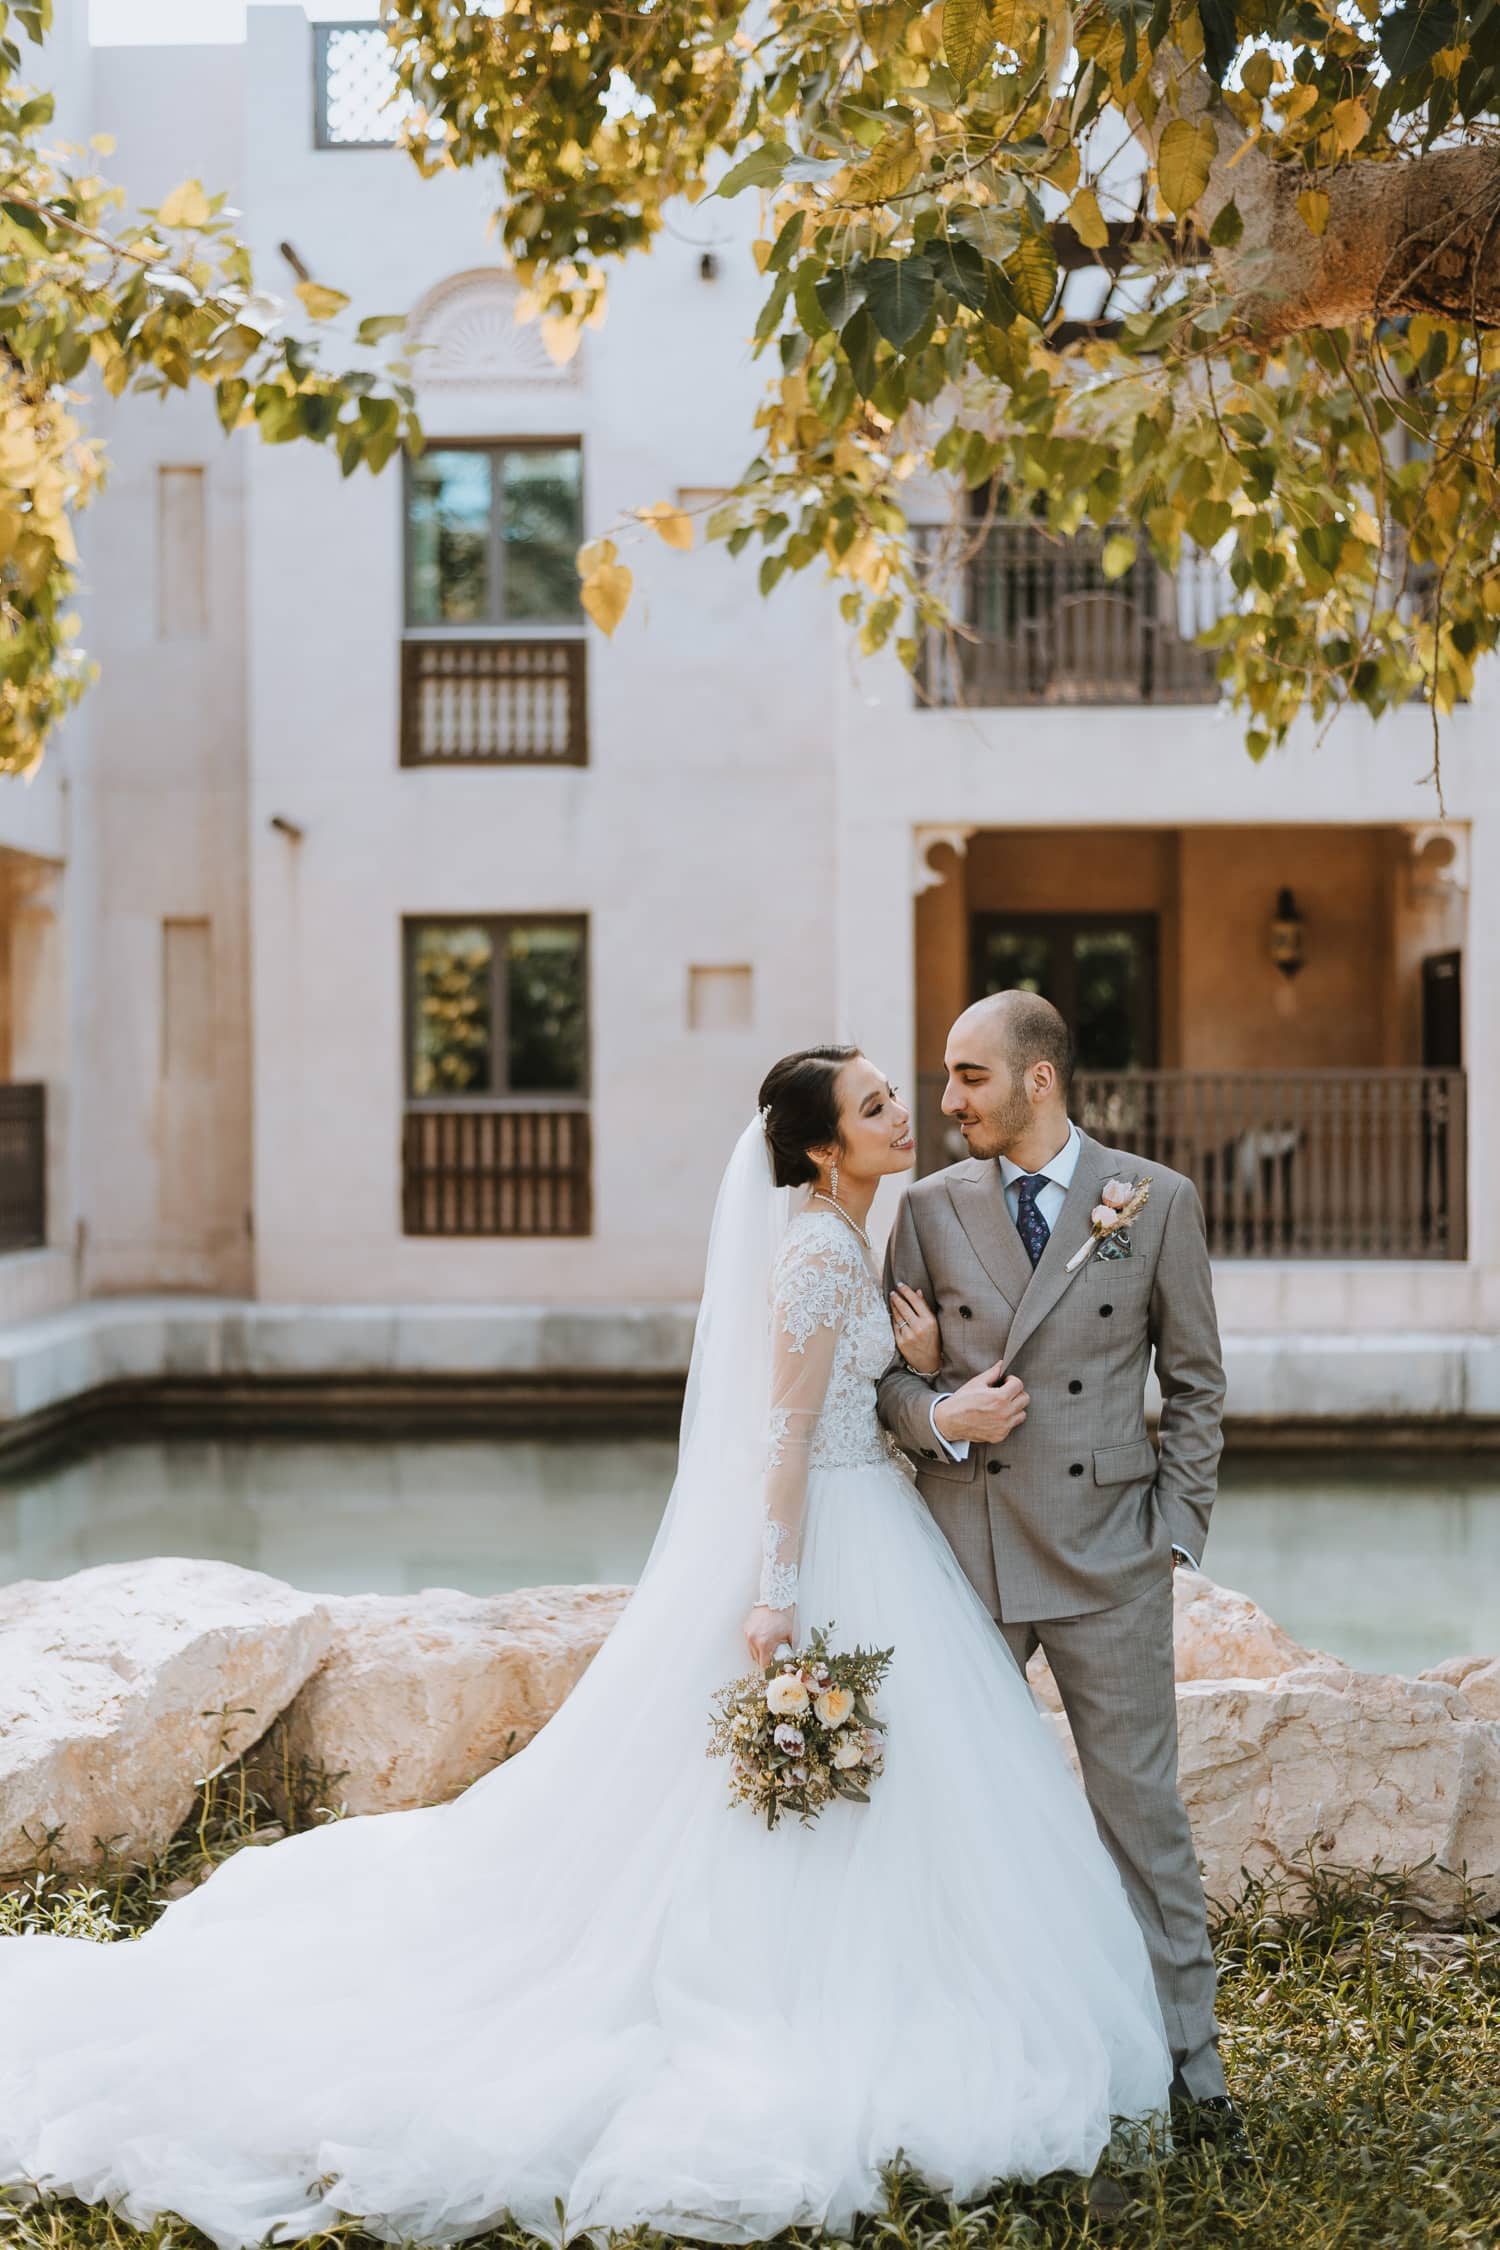 Whimsical Dubai Destination Wedding Photo Jumeirah Al Qasr